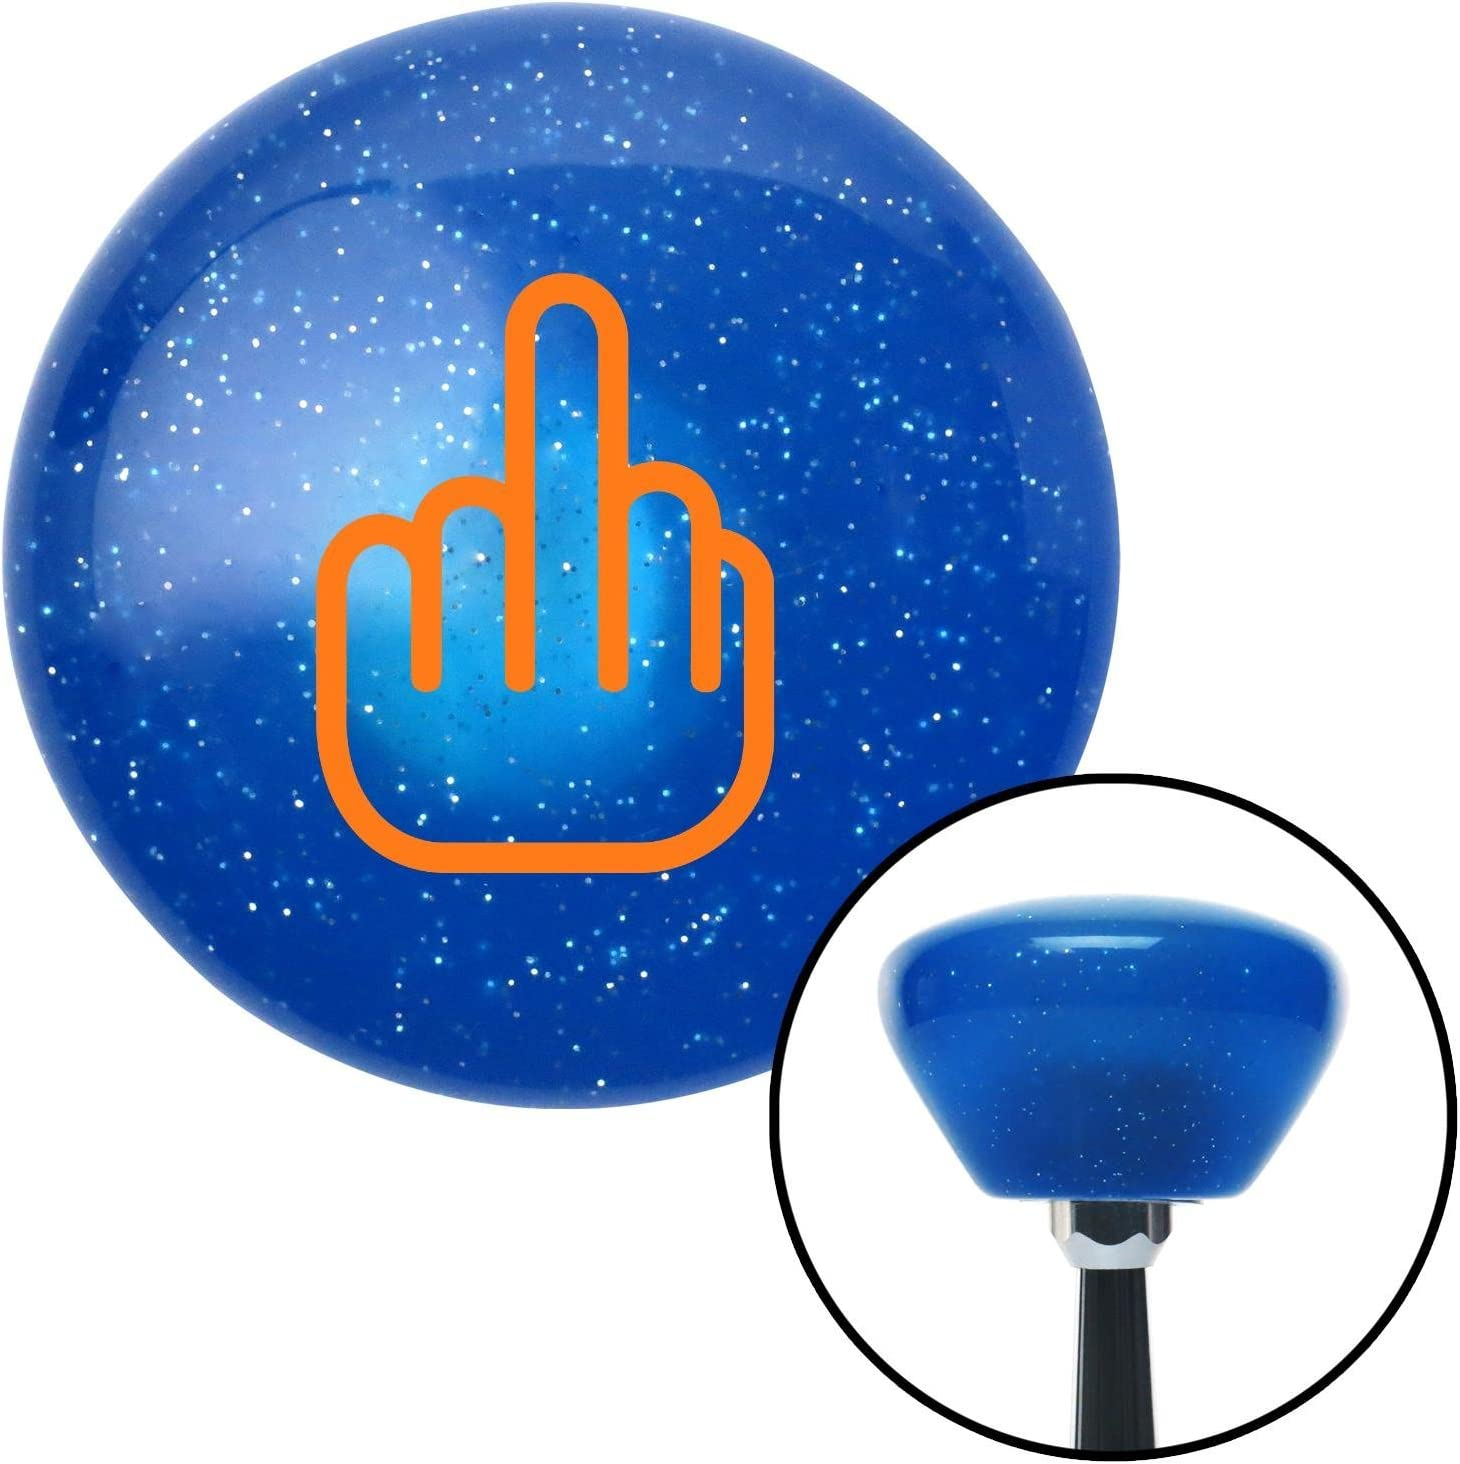 American Shifter 185828 Blue Retro Metal Flake Shift Knob with M16 x 1.5 Insert Orange Smooth Middle Finger